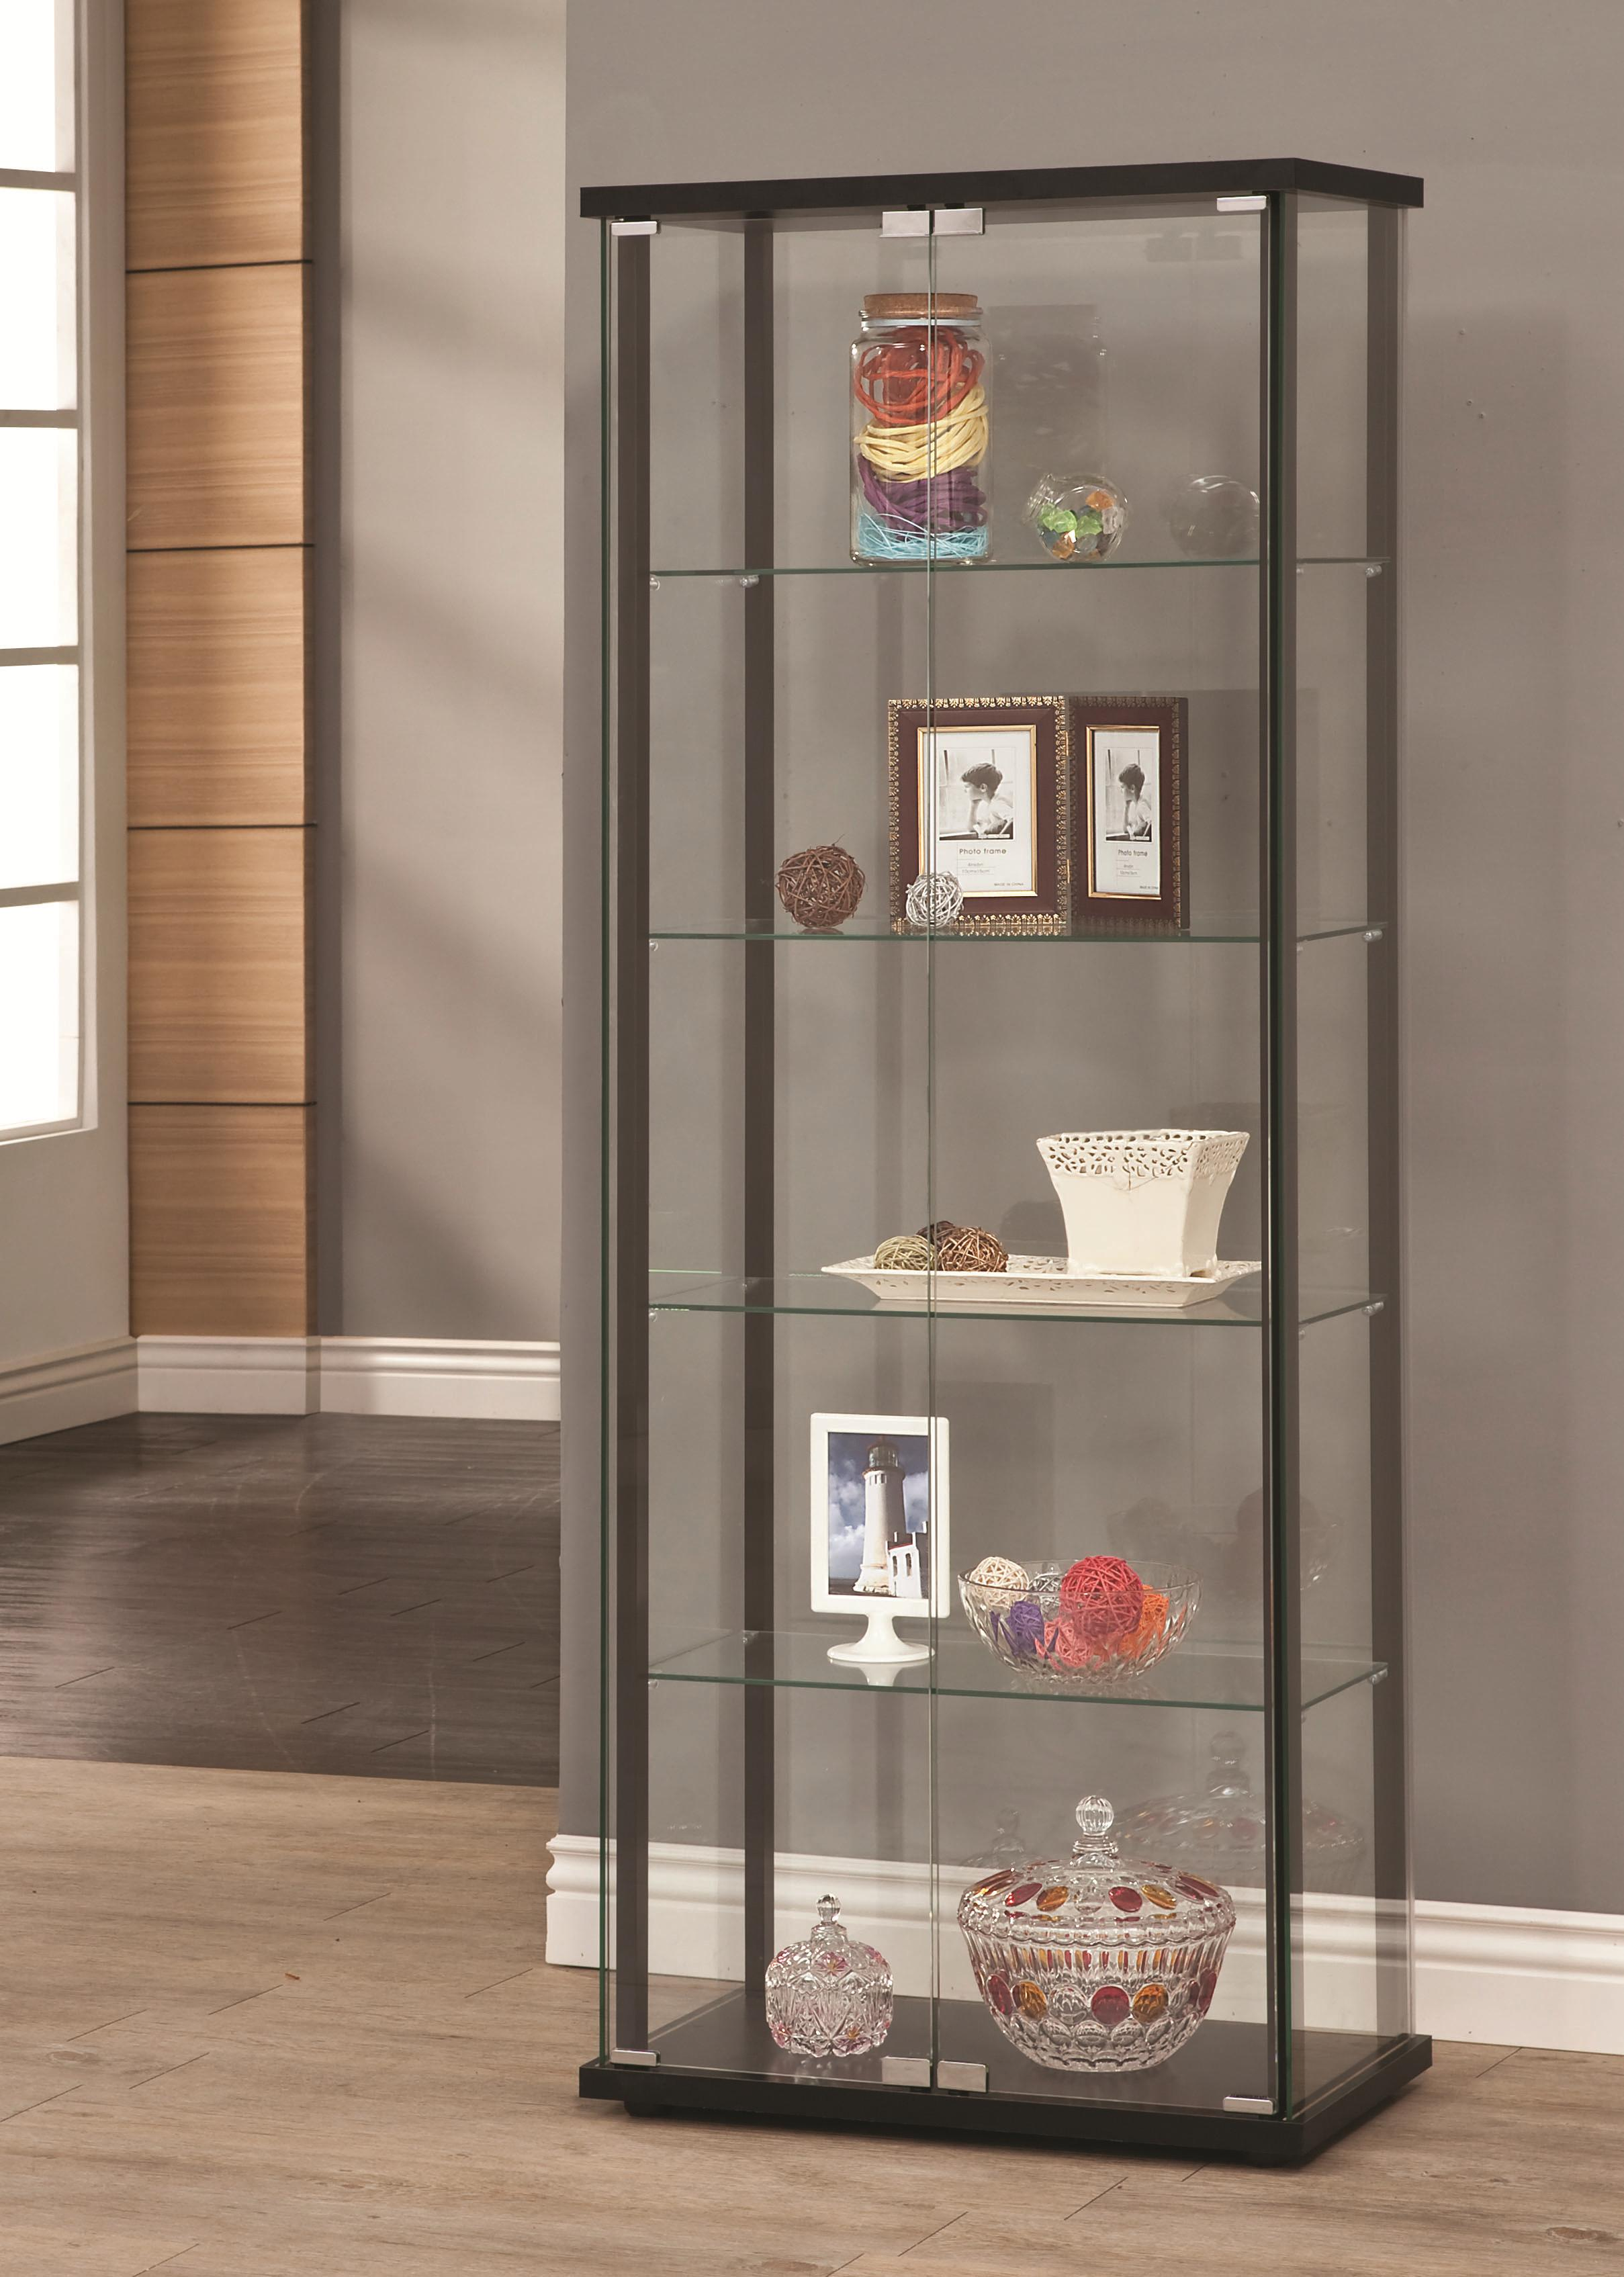 r shelves brown advertise to with ways catchy beige ikea brilliant door cabinet and cabinets fabrik wooden plus curio glass